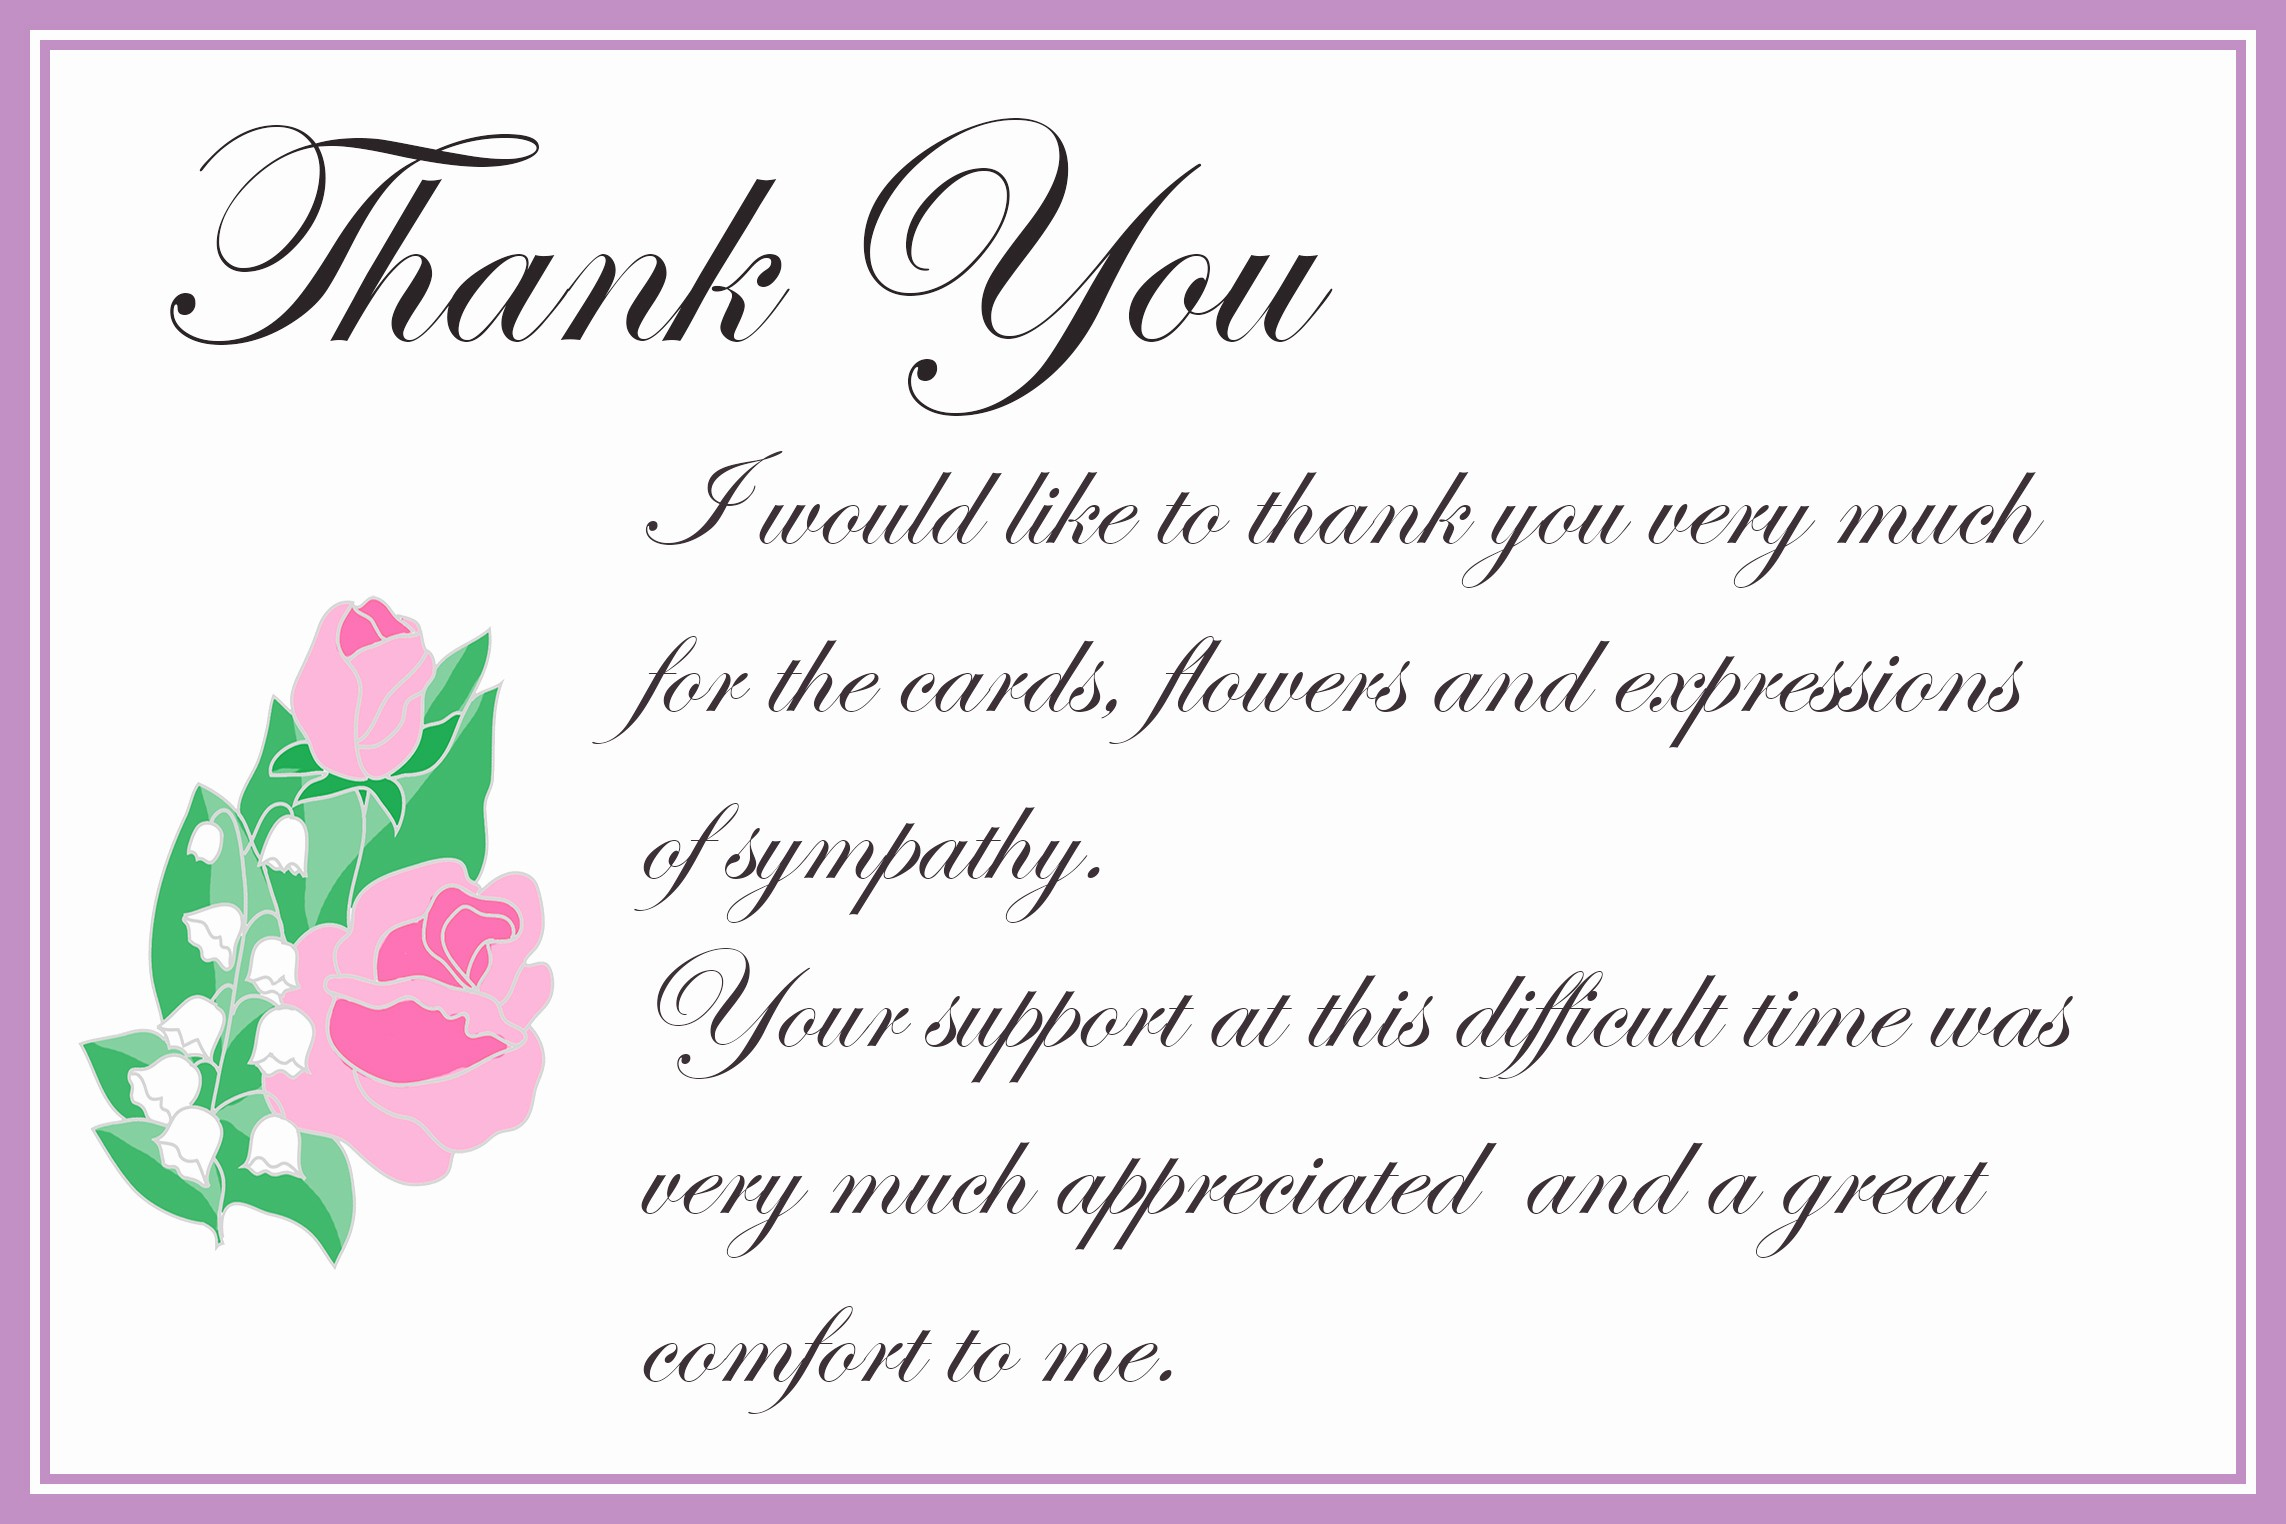 Words for Thank You Card Best Of Thanks Card Words Portablegasgrillweber